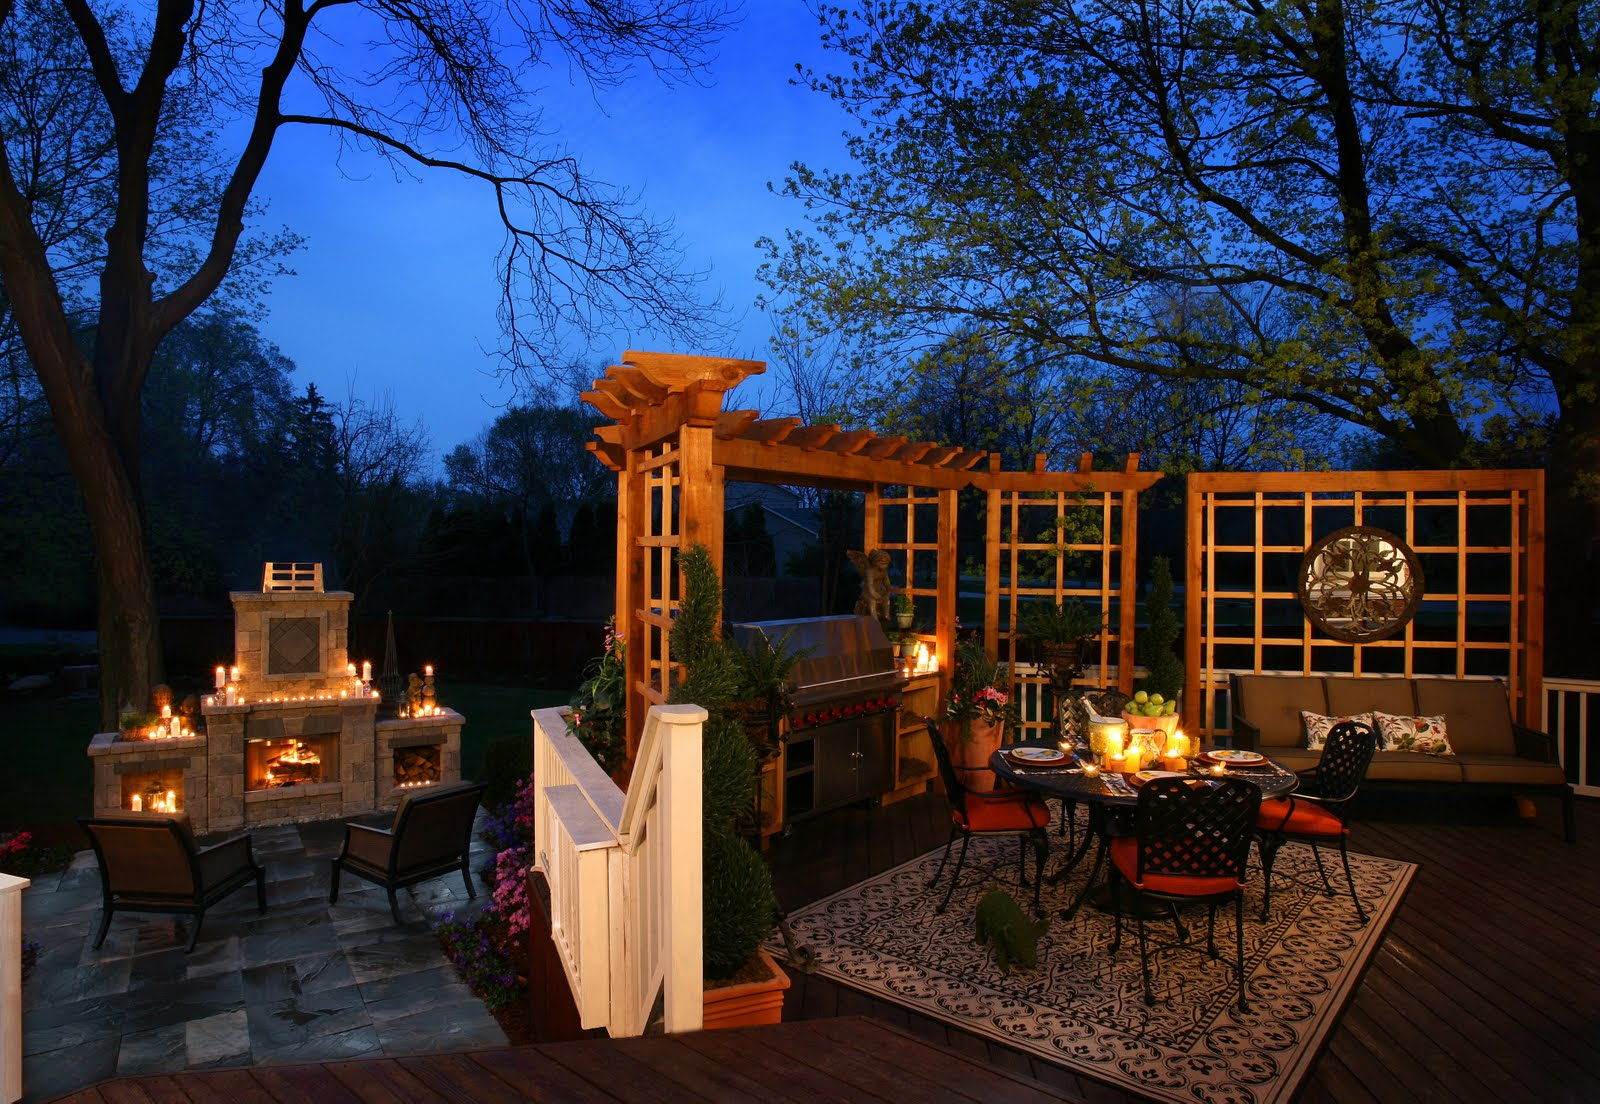 Dominick tringali architects outdoor living spaces for Outdoor living areas images